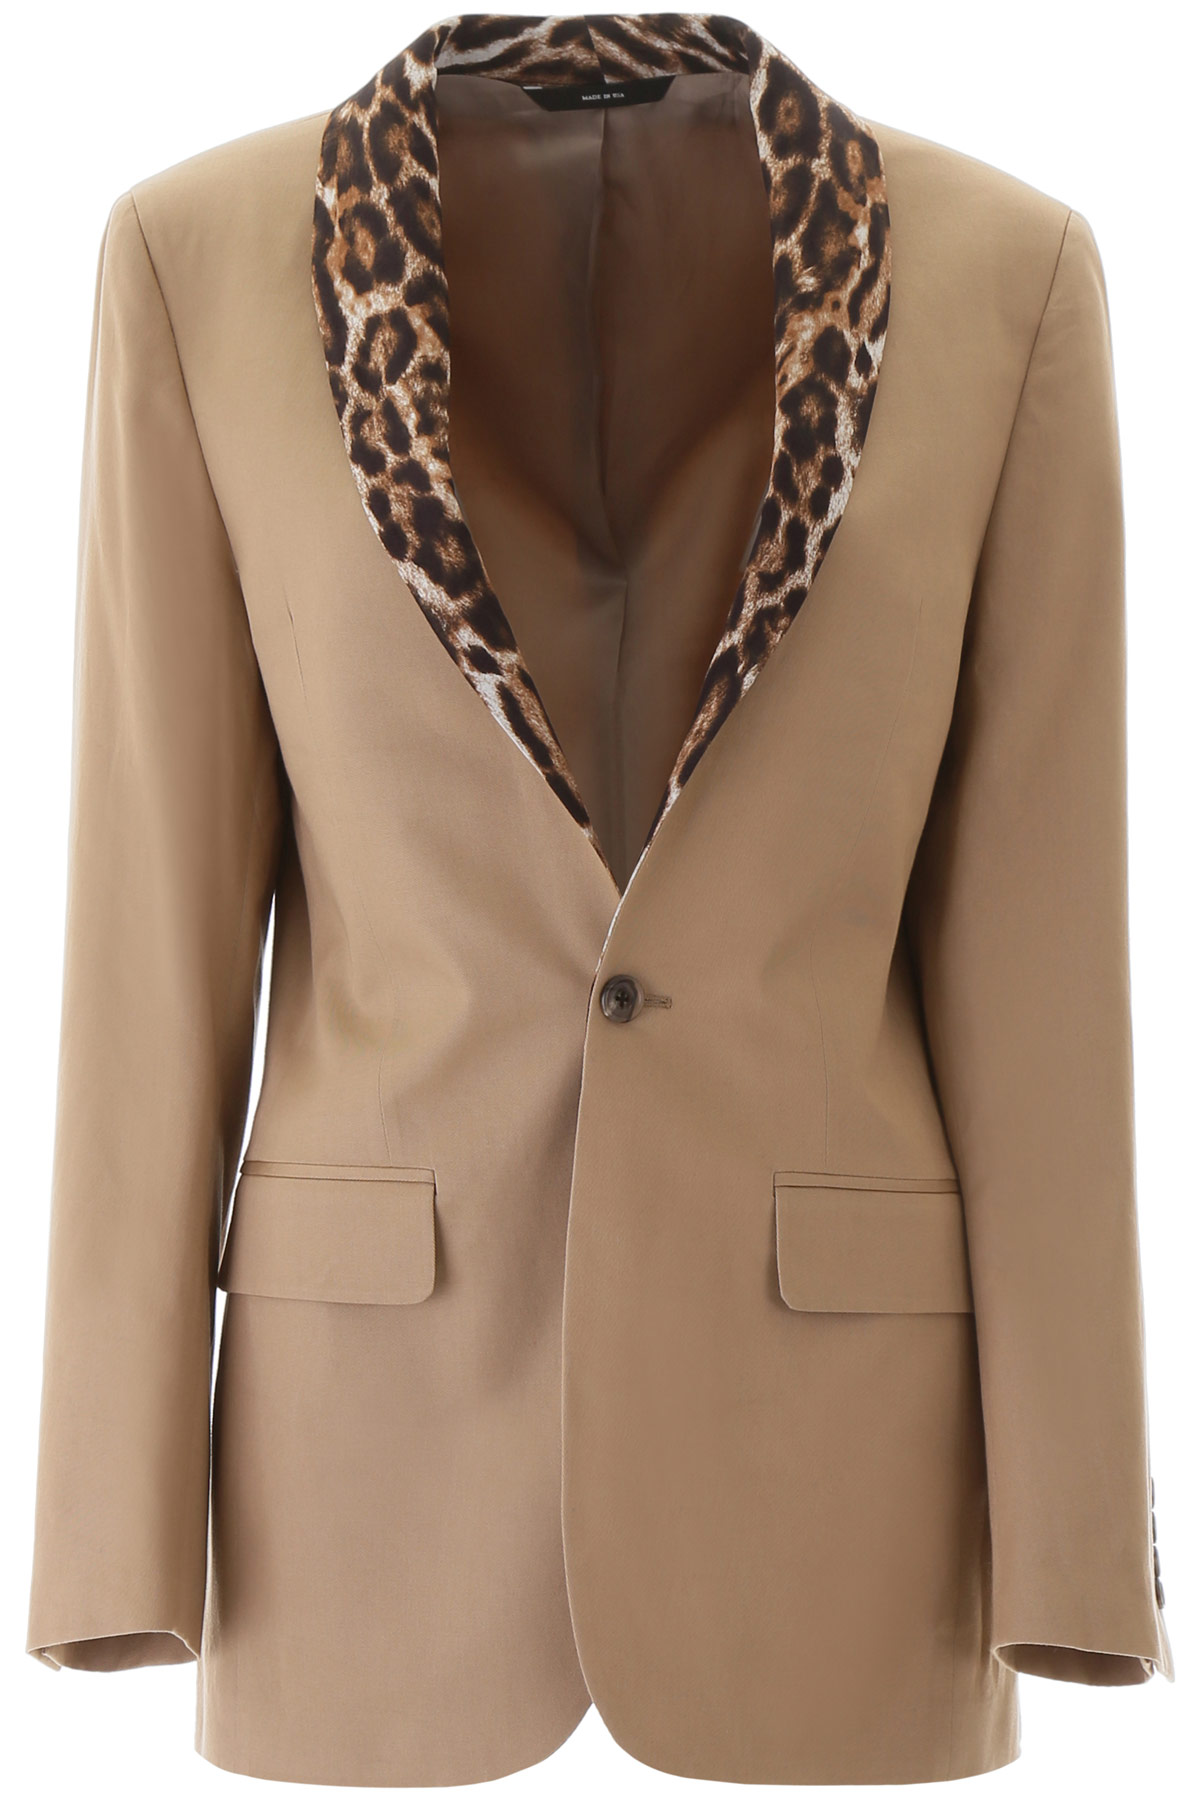 R13 BLAZER WITH ANIMAL PRINT LAPEL S Beige, Black Cotton